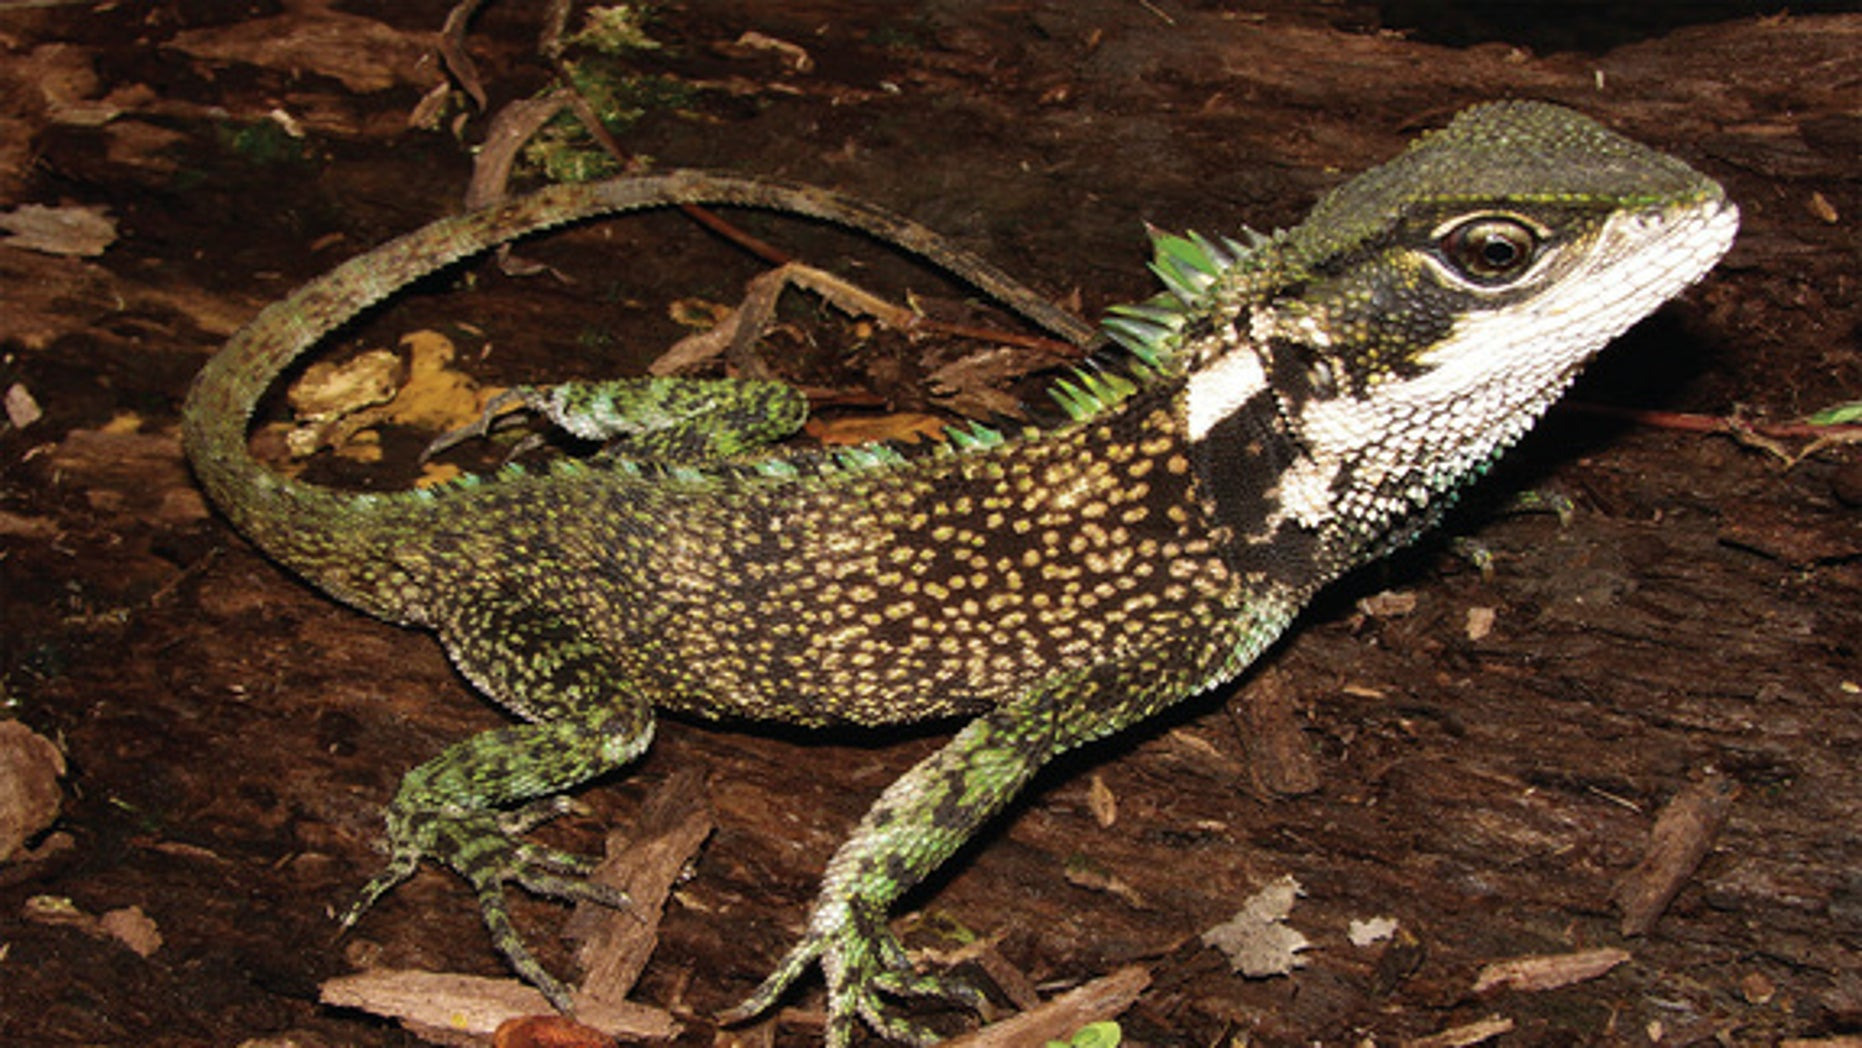 Enyalioides sophiarothschildae, one of three new woodlizard species discovered in the Andes.